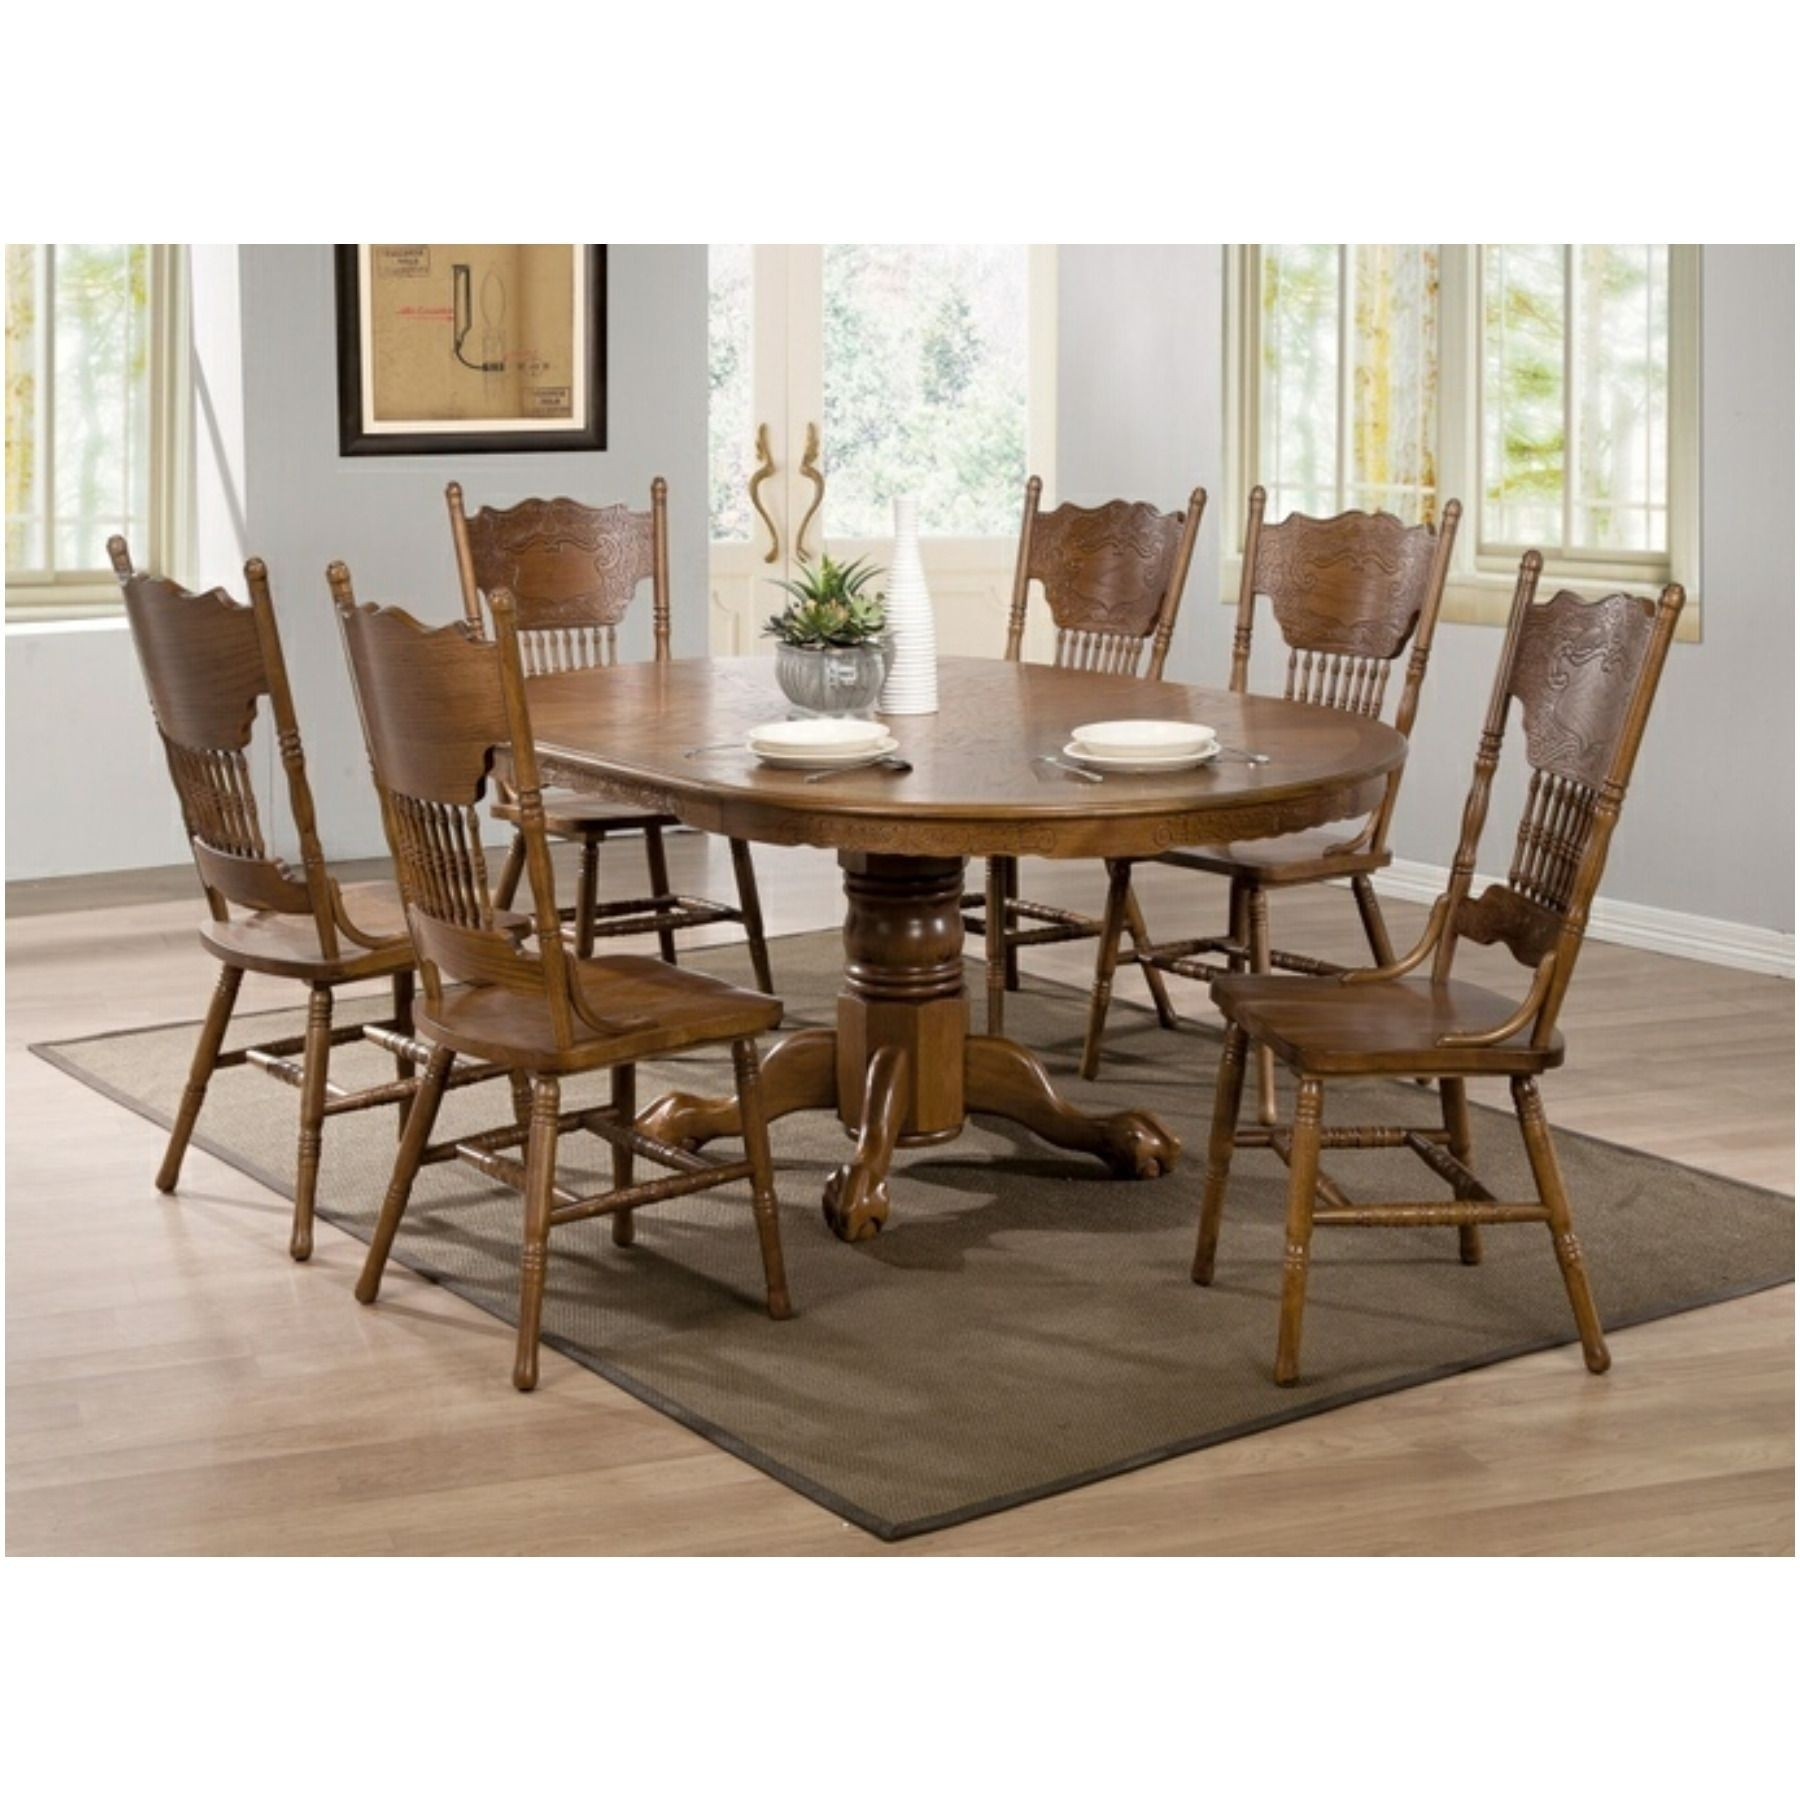 The 28 Awesome Coaster Mission Style Dining Table – Welovedandelion Intended For 2017 Craftsman 7 Piece Rectangle Extension Dining Sets With Side Chairs (Image 20 of 20)